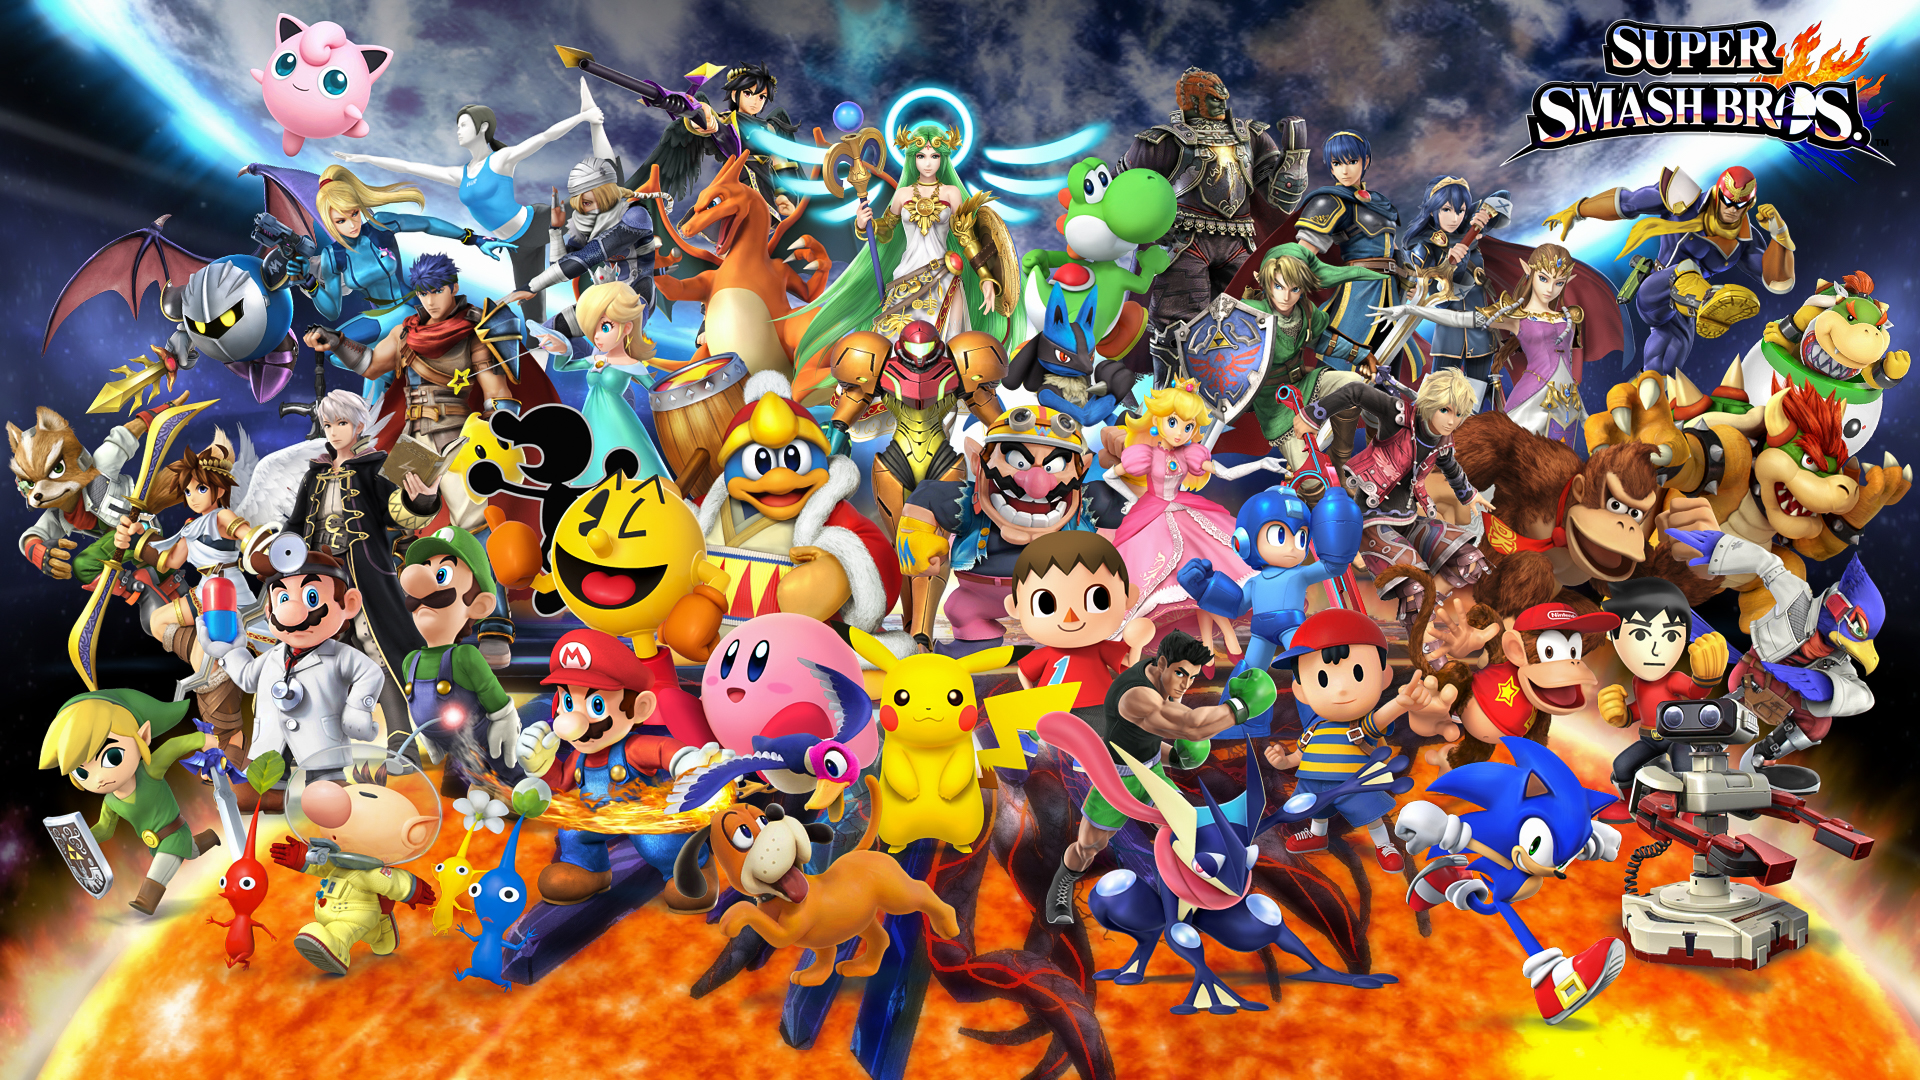 Video Game - Super Smash Bros. for Nintendo 3DS and Wii U  Mario Luigi Princess Peach Bowser Link Zelda Ganondorf Sheik (The Legend of Zelda) Toon Link Mega Man Sonic the Hedgehog Pokémon Greninja (Pokémon) Pikachu Star Fox Super Mario The Legend of Zelda Metroid Charizard (Pokémon) Jigglypuff (Pokémon) Lucario (Pokémon) Wallpaper